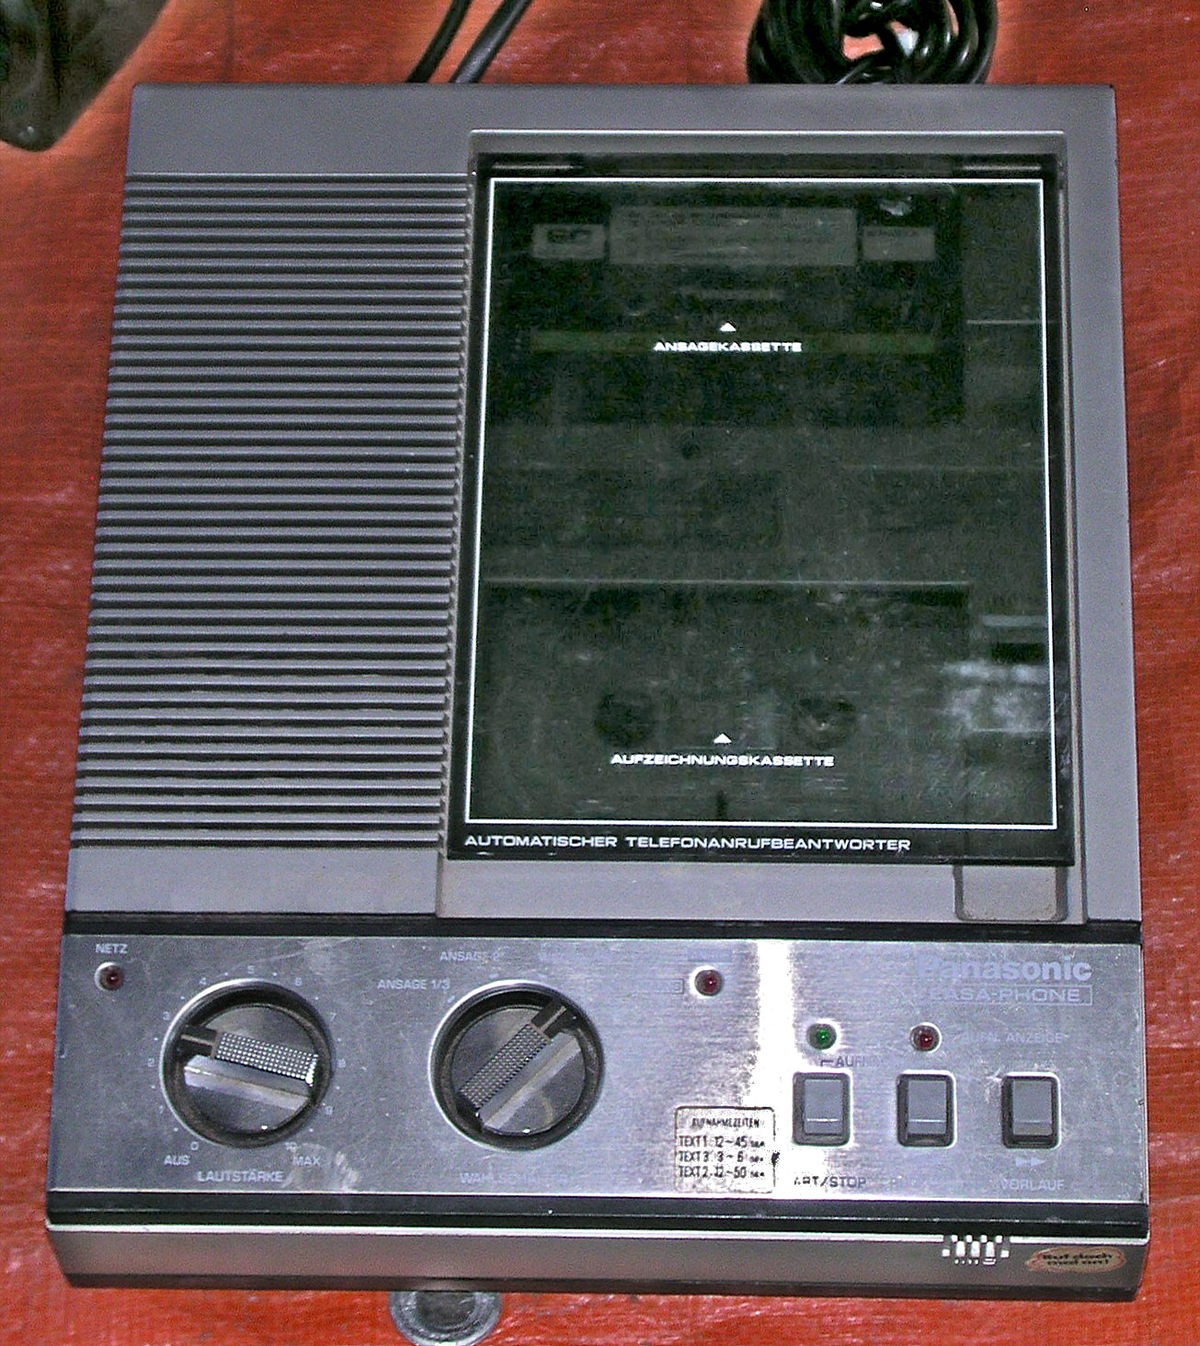 Answering Machine Wikipedia